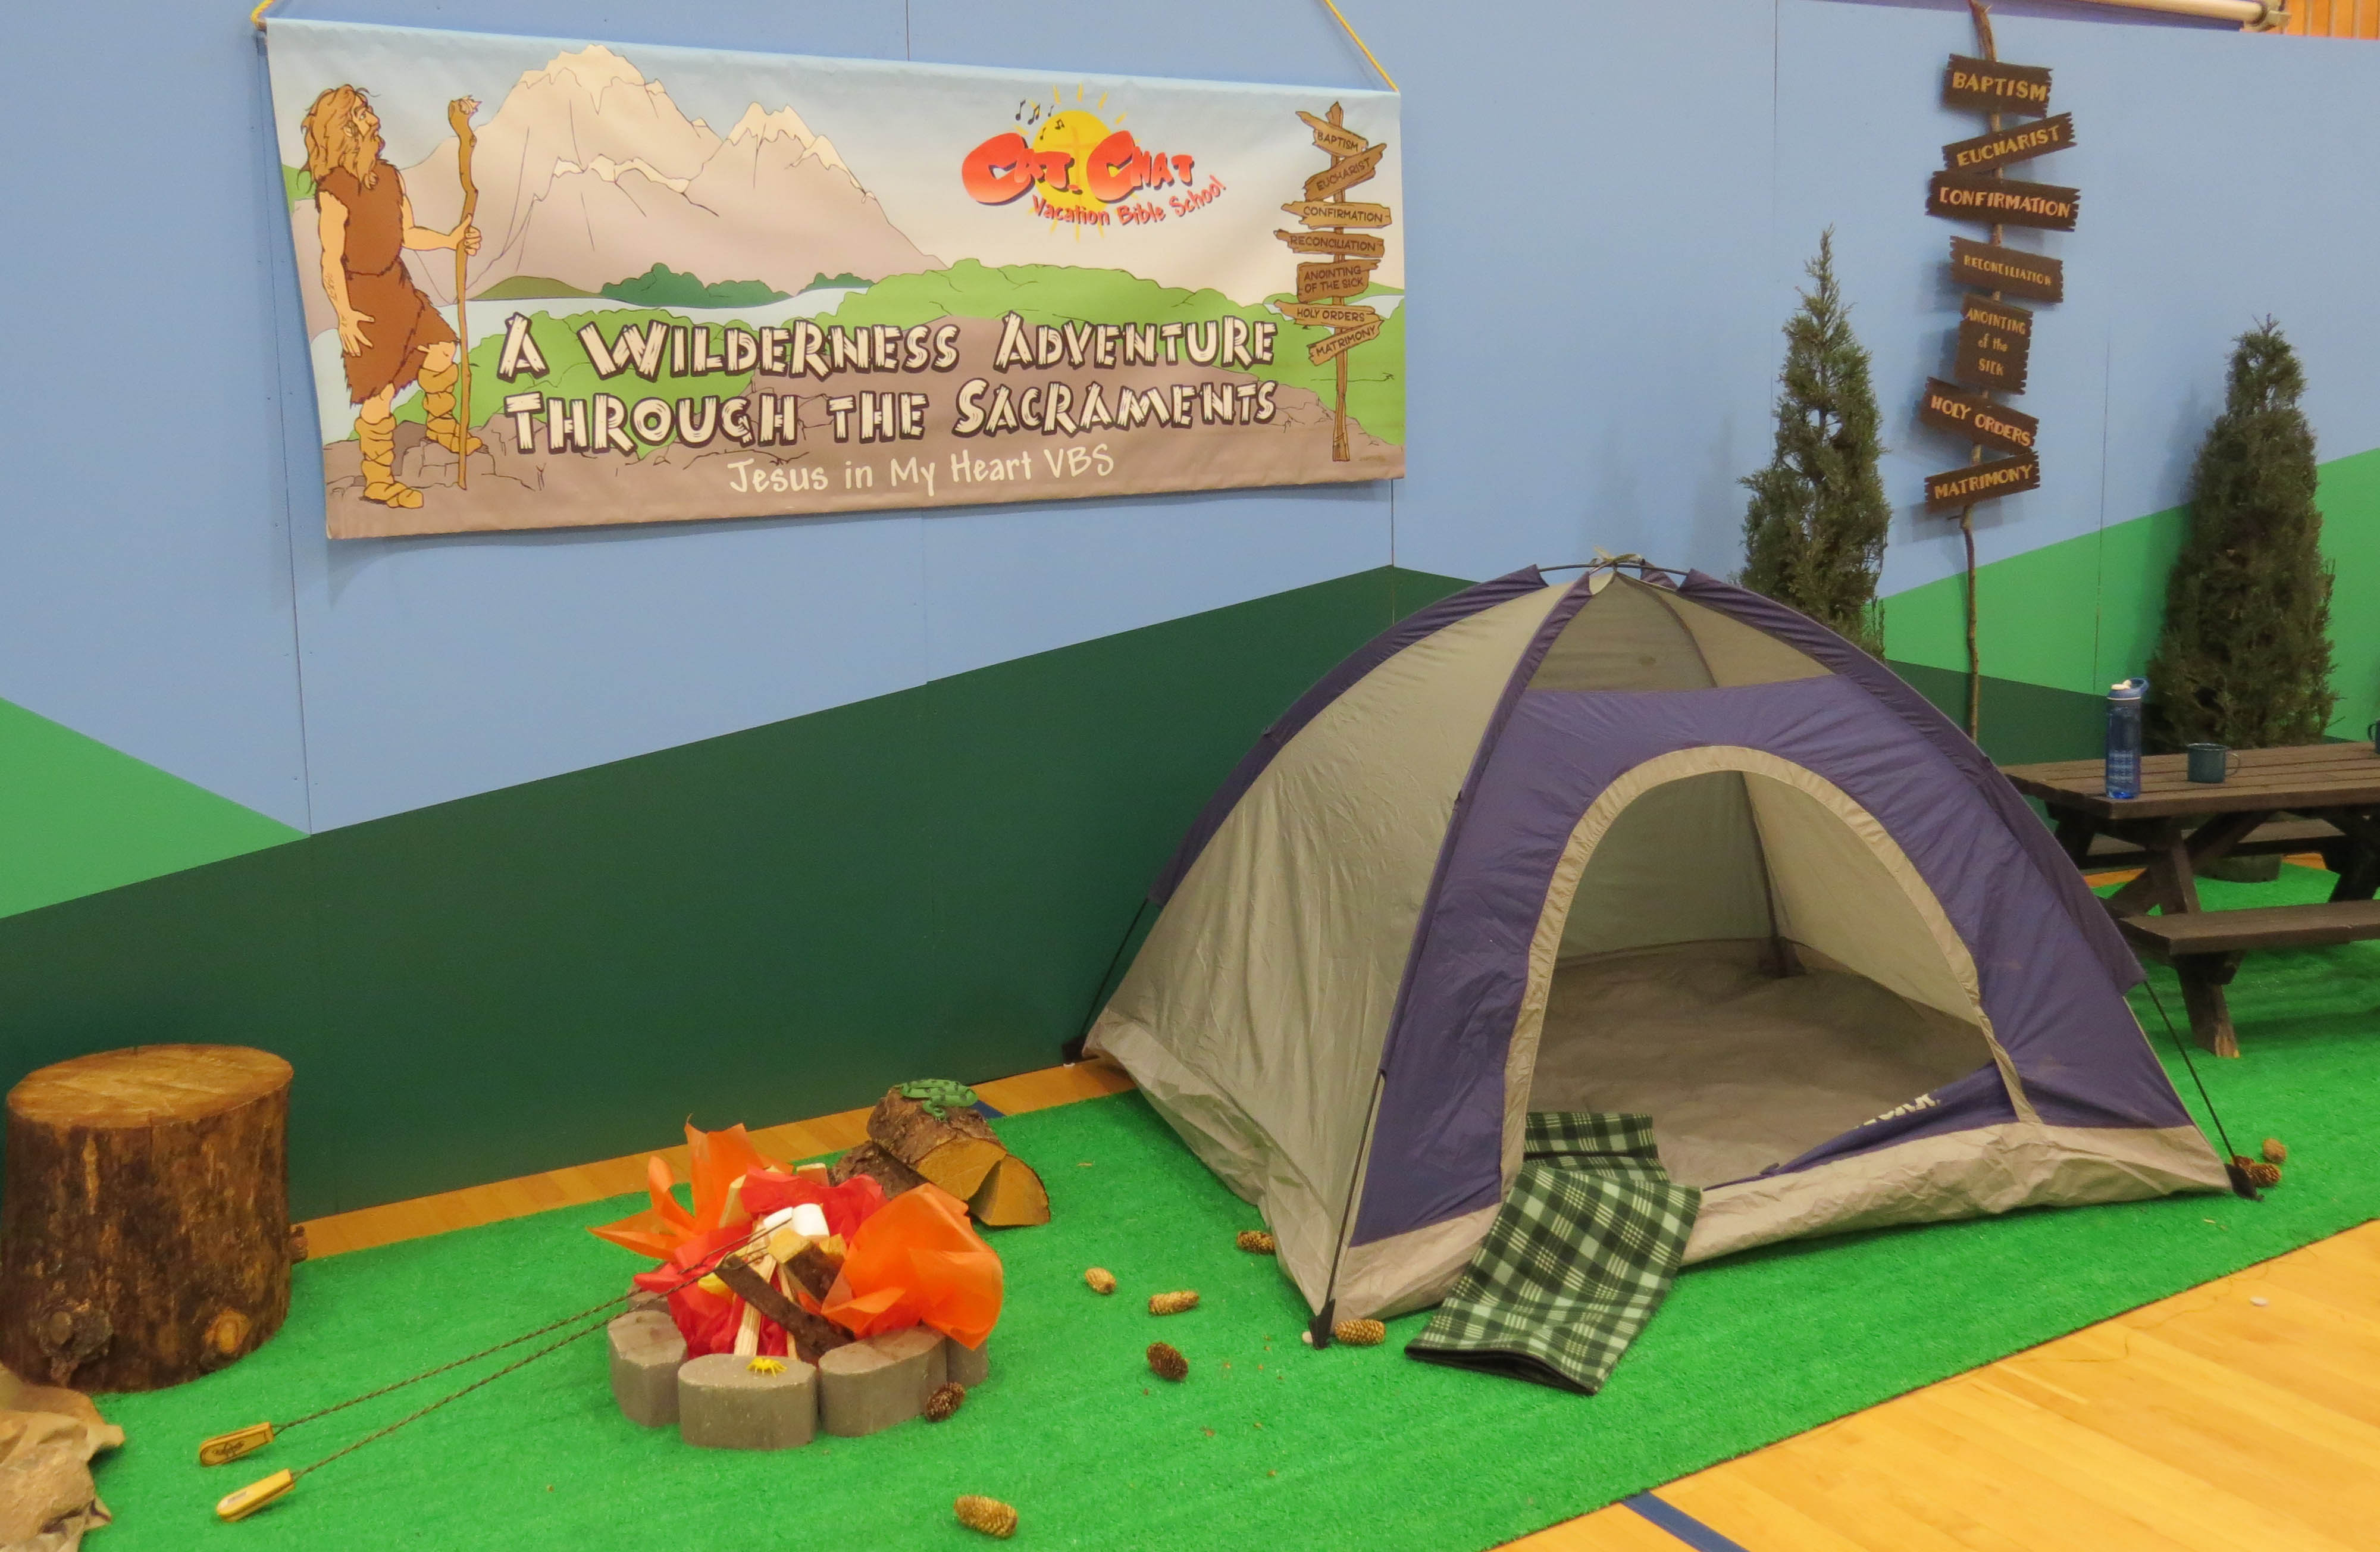 Wilderness display with tent